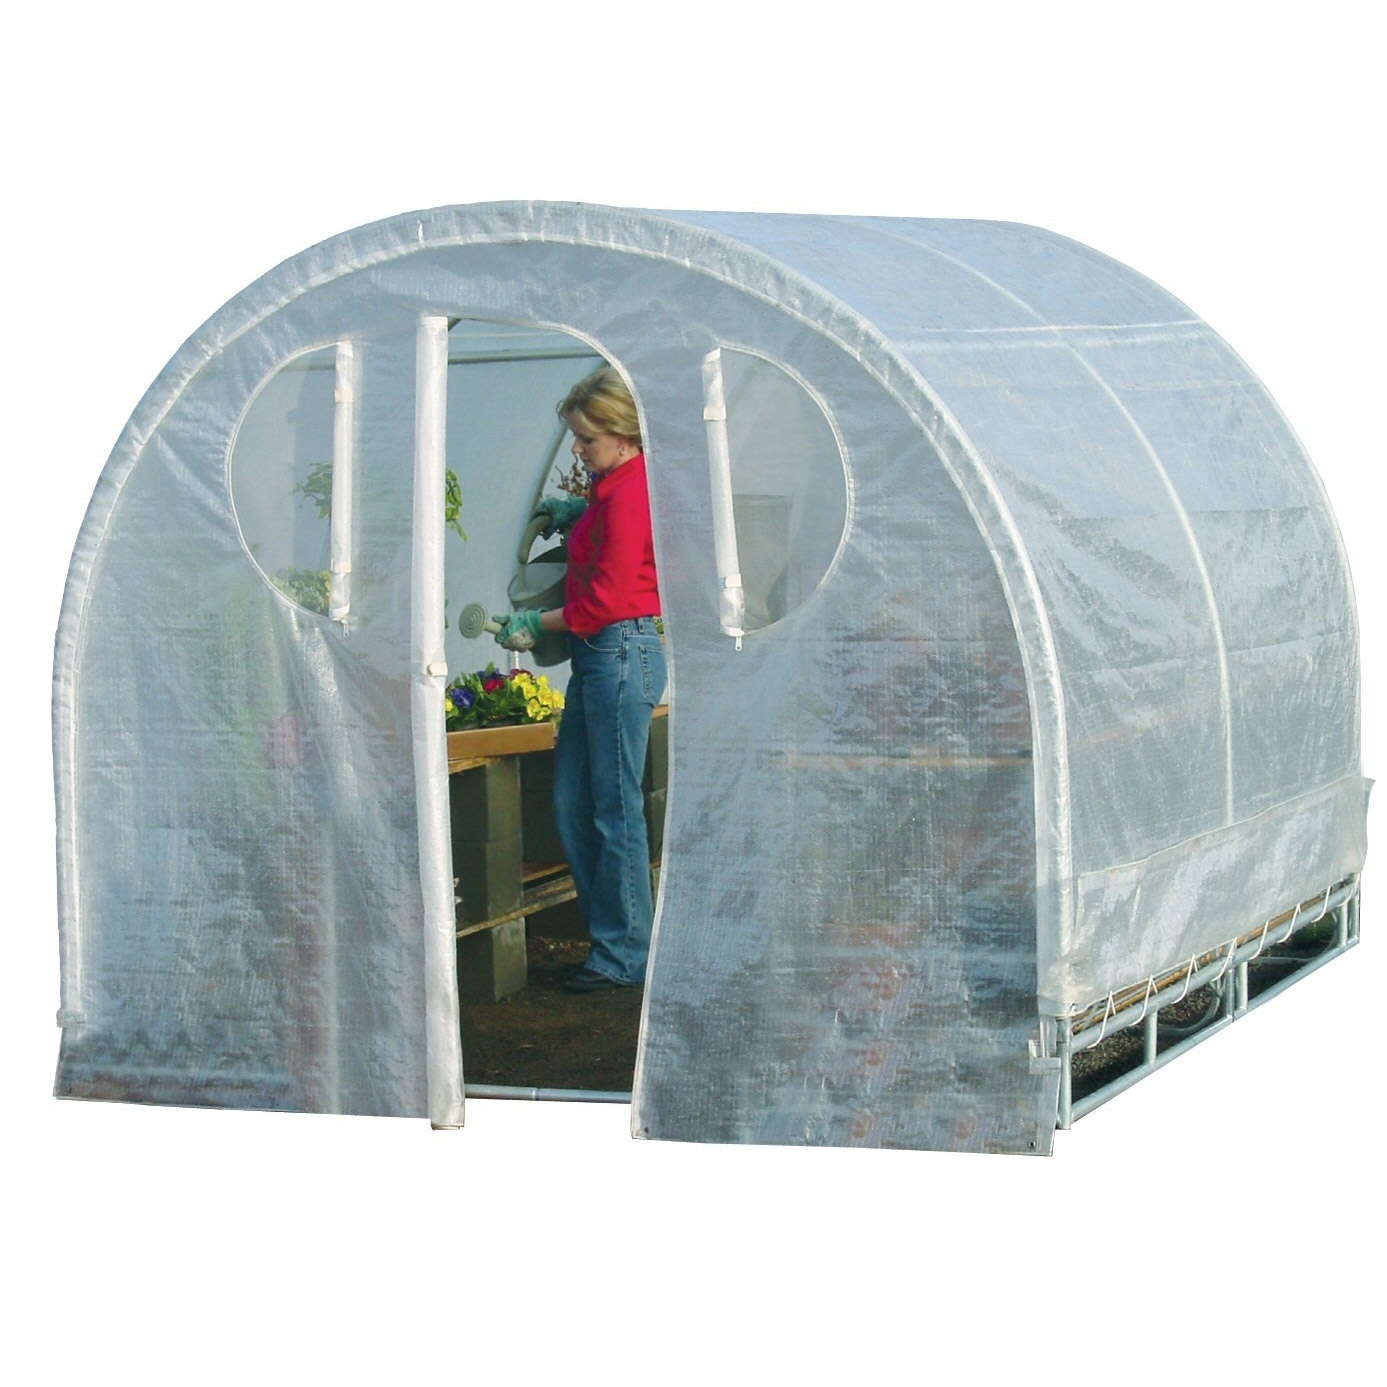 Polytunnel Hoop House Style Greenhouse (8' x 8'), PTHSG8X8 :  Designed as the highest quality, most compact, space saving greenhouse packaged in a retail box. This Polytunnel hoop-house cold-frame style High-Tunnel greenhouse features a space saver design.  The modern greenhouse offers all of the same quality, workmanship, and results as the Commercial Series Green House while appealing to beginner, novice, and professional growers alike. Each Deck and Patio greenhouse is constructed from 100 percent commercial grade galvanized steel frame. Featuring quick connect steel frame and steel frame connectors. It includes a rugged all weather triple layer Polyurethane, cover, back panel, and front entry. Rust resistant galvanized steel. The frame components and frame connectors are galvanized after being welded. This Greenhouse provides maximum protection, growth, and reliability by using a complete three piece all growth fabric construction with unit-body cover, solid connected back panel, and solid connected front entry – allowing for easy access and maintenance of plants, vegetables and herbs. It also utilizes Smart Vent – technology controlling airflow from the base of the unit and the ends of the unit with special zip out Velcro held screened vented windows. In addition the triple ridge reinforced roof structure not only acts as a weather guardian protecting against severe and inclement weather but also allows growing enthusiasts to hang their full size basket plants from the roof of the green house. All-steel construction with flex frame design and 1-1/4-inch, 16-gauge steel for stability. 14-gauge inside steel slip fitting joints for rugged rigidity and easy setup.